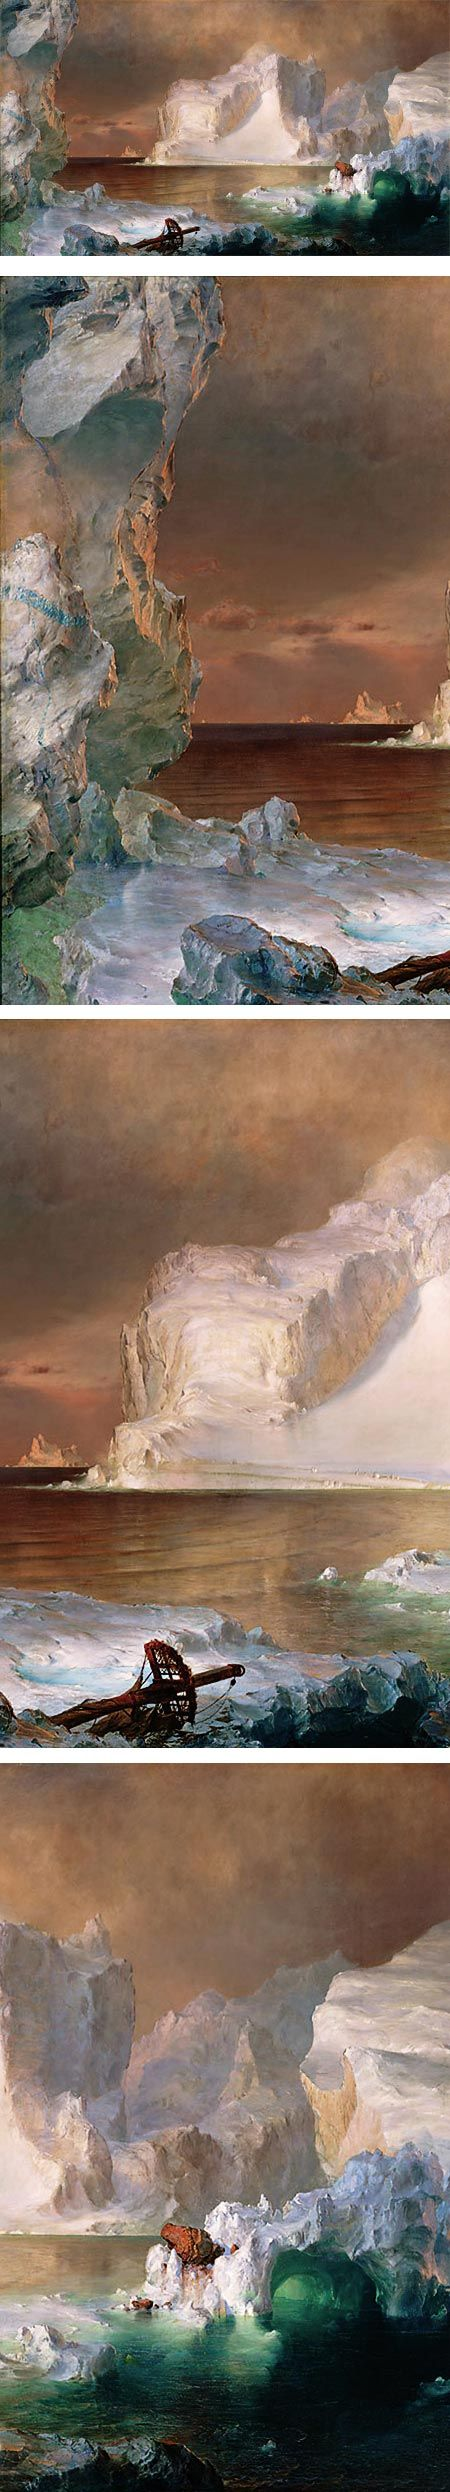 Eye Candy for Today: Church's icebergs